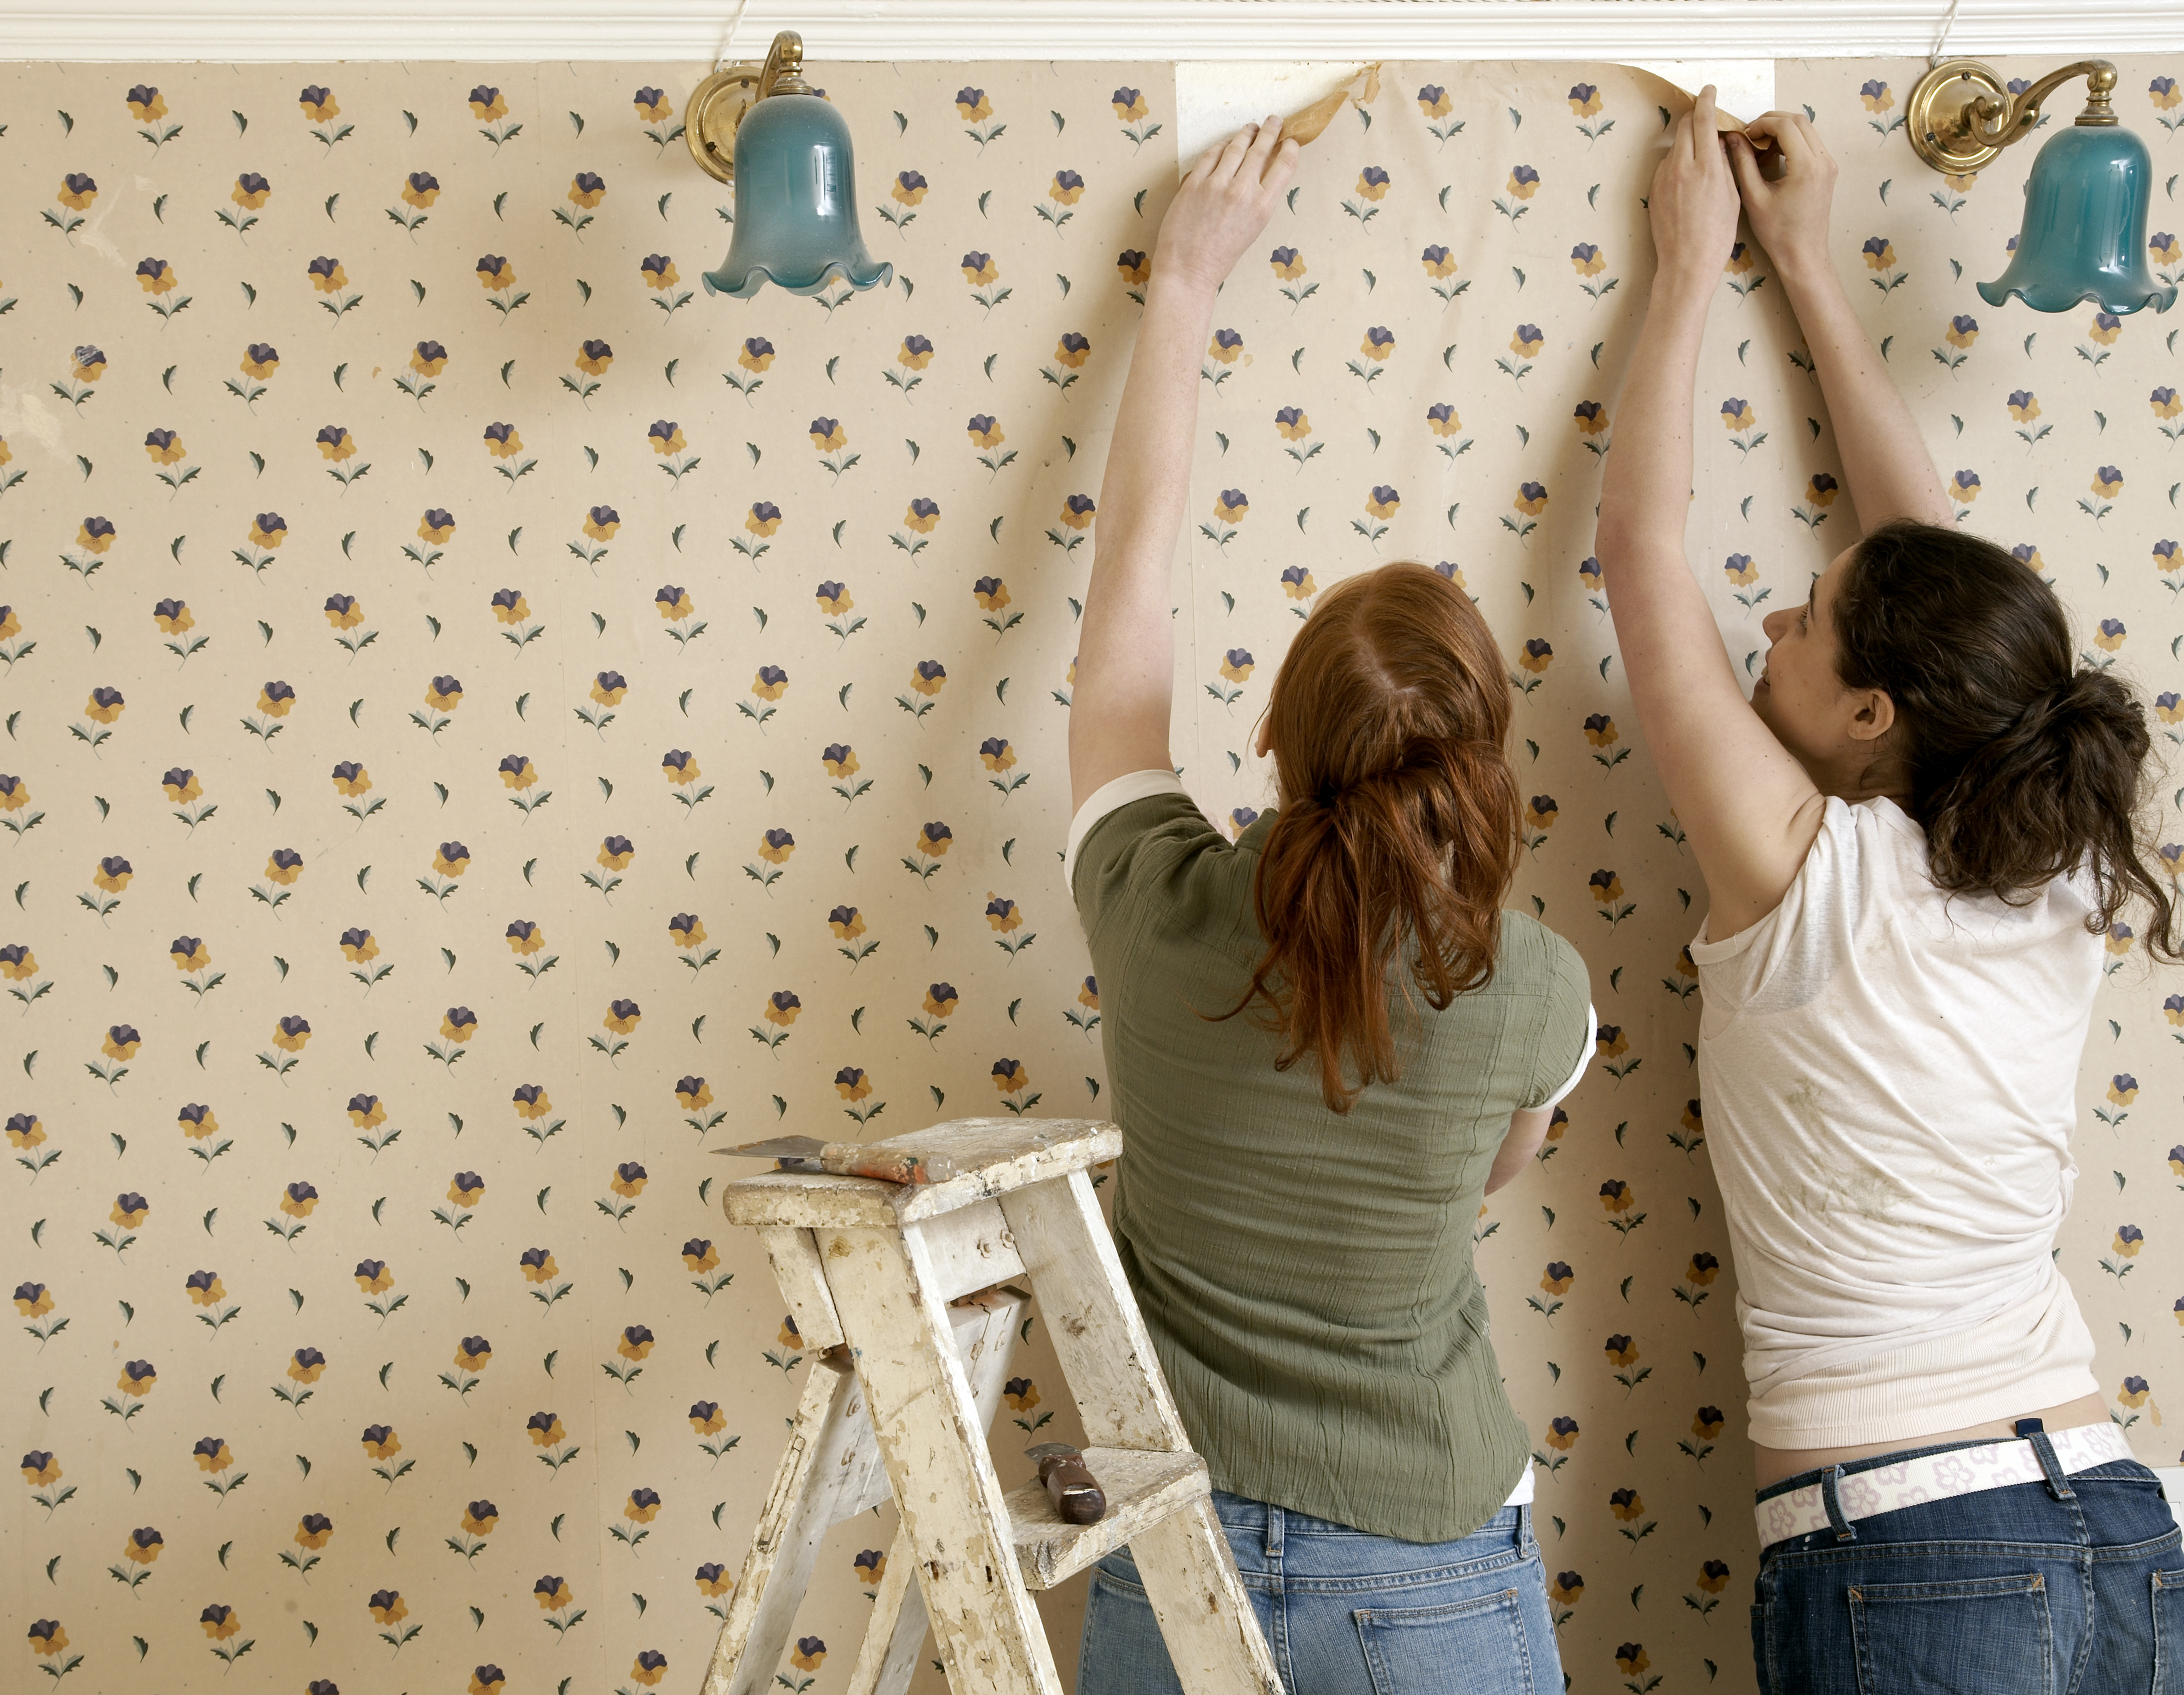 How to Repair Drywall Damage Caused by Wallpaper Removal | Home Guides | SF Gate